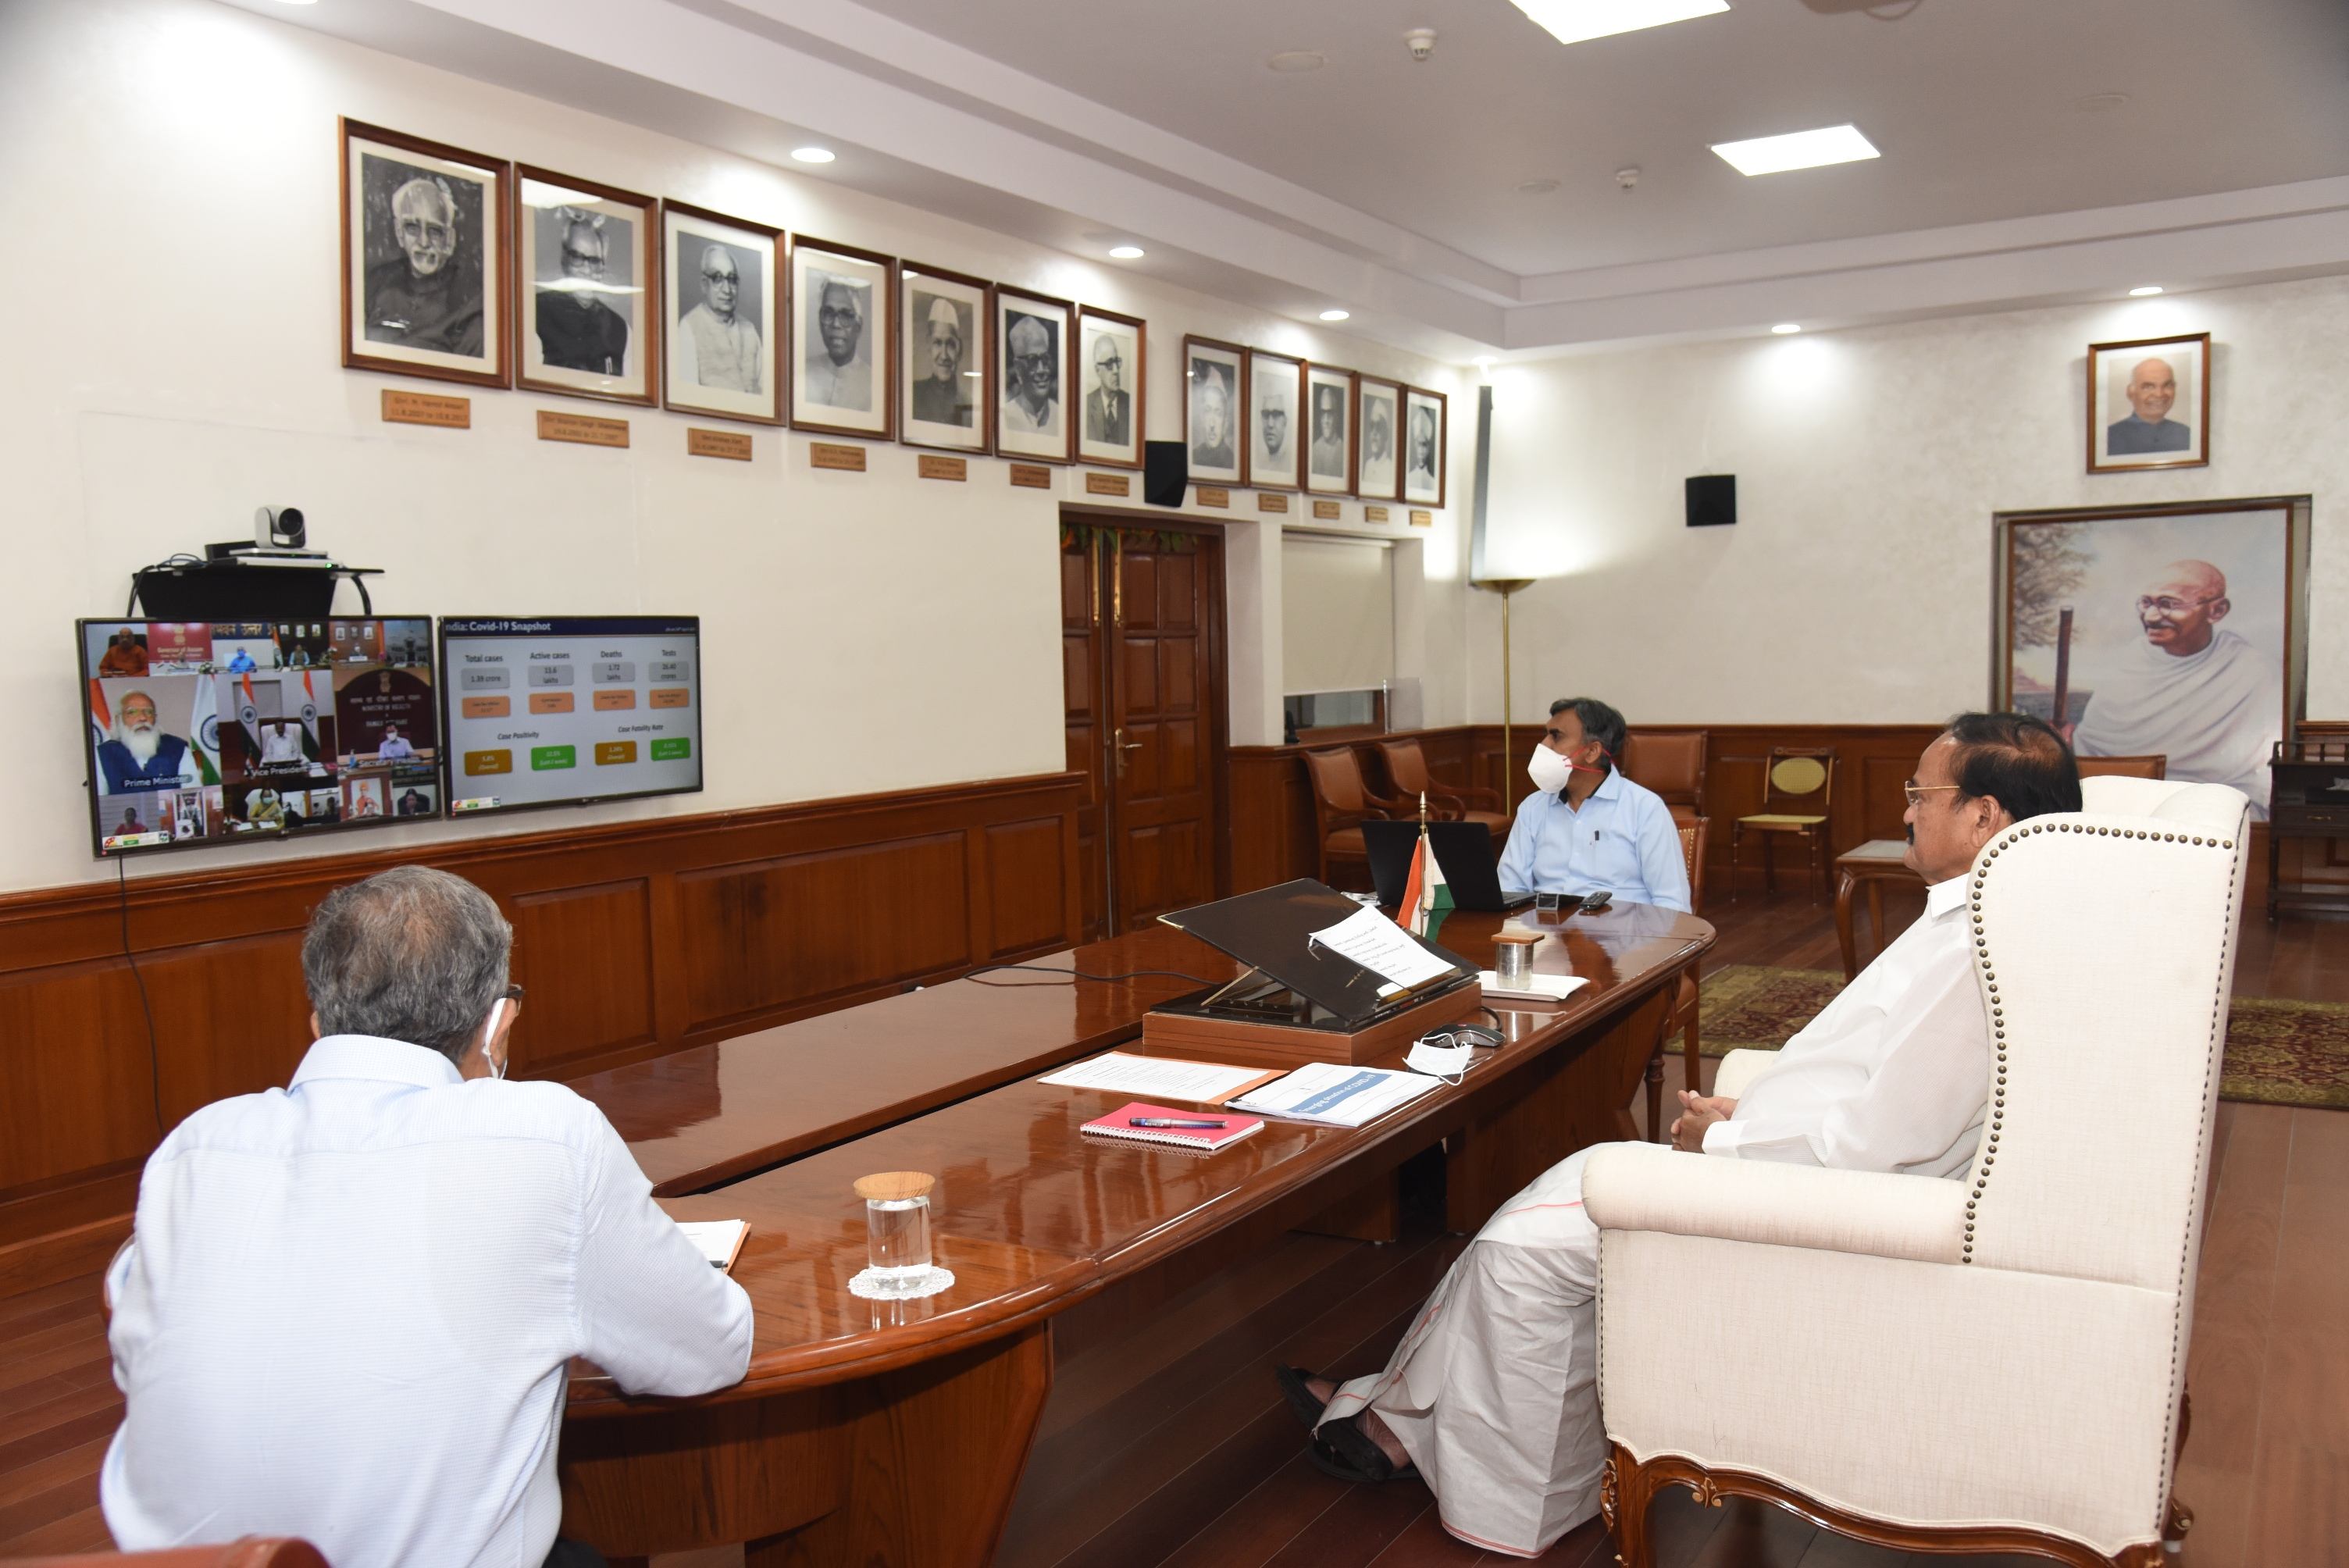 The Vice President, Shri M. Venkaiah Naidu during video conference with the Governors on COVID-19 situation and Vaccination Drive in the country, in New Delhi on April 14, 2021.